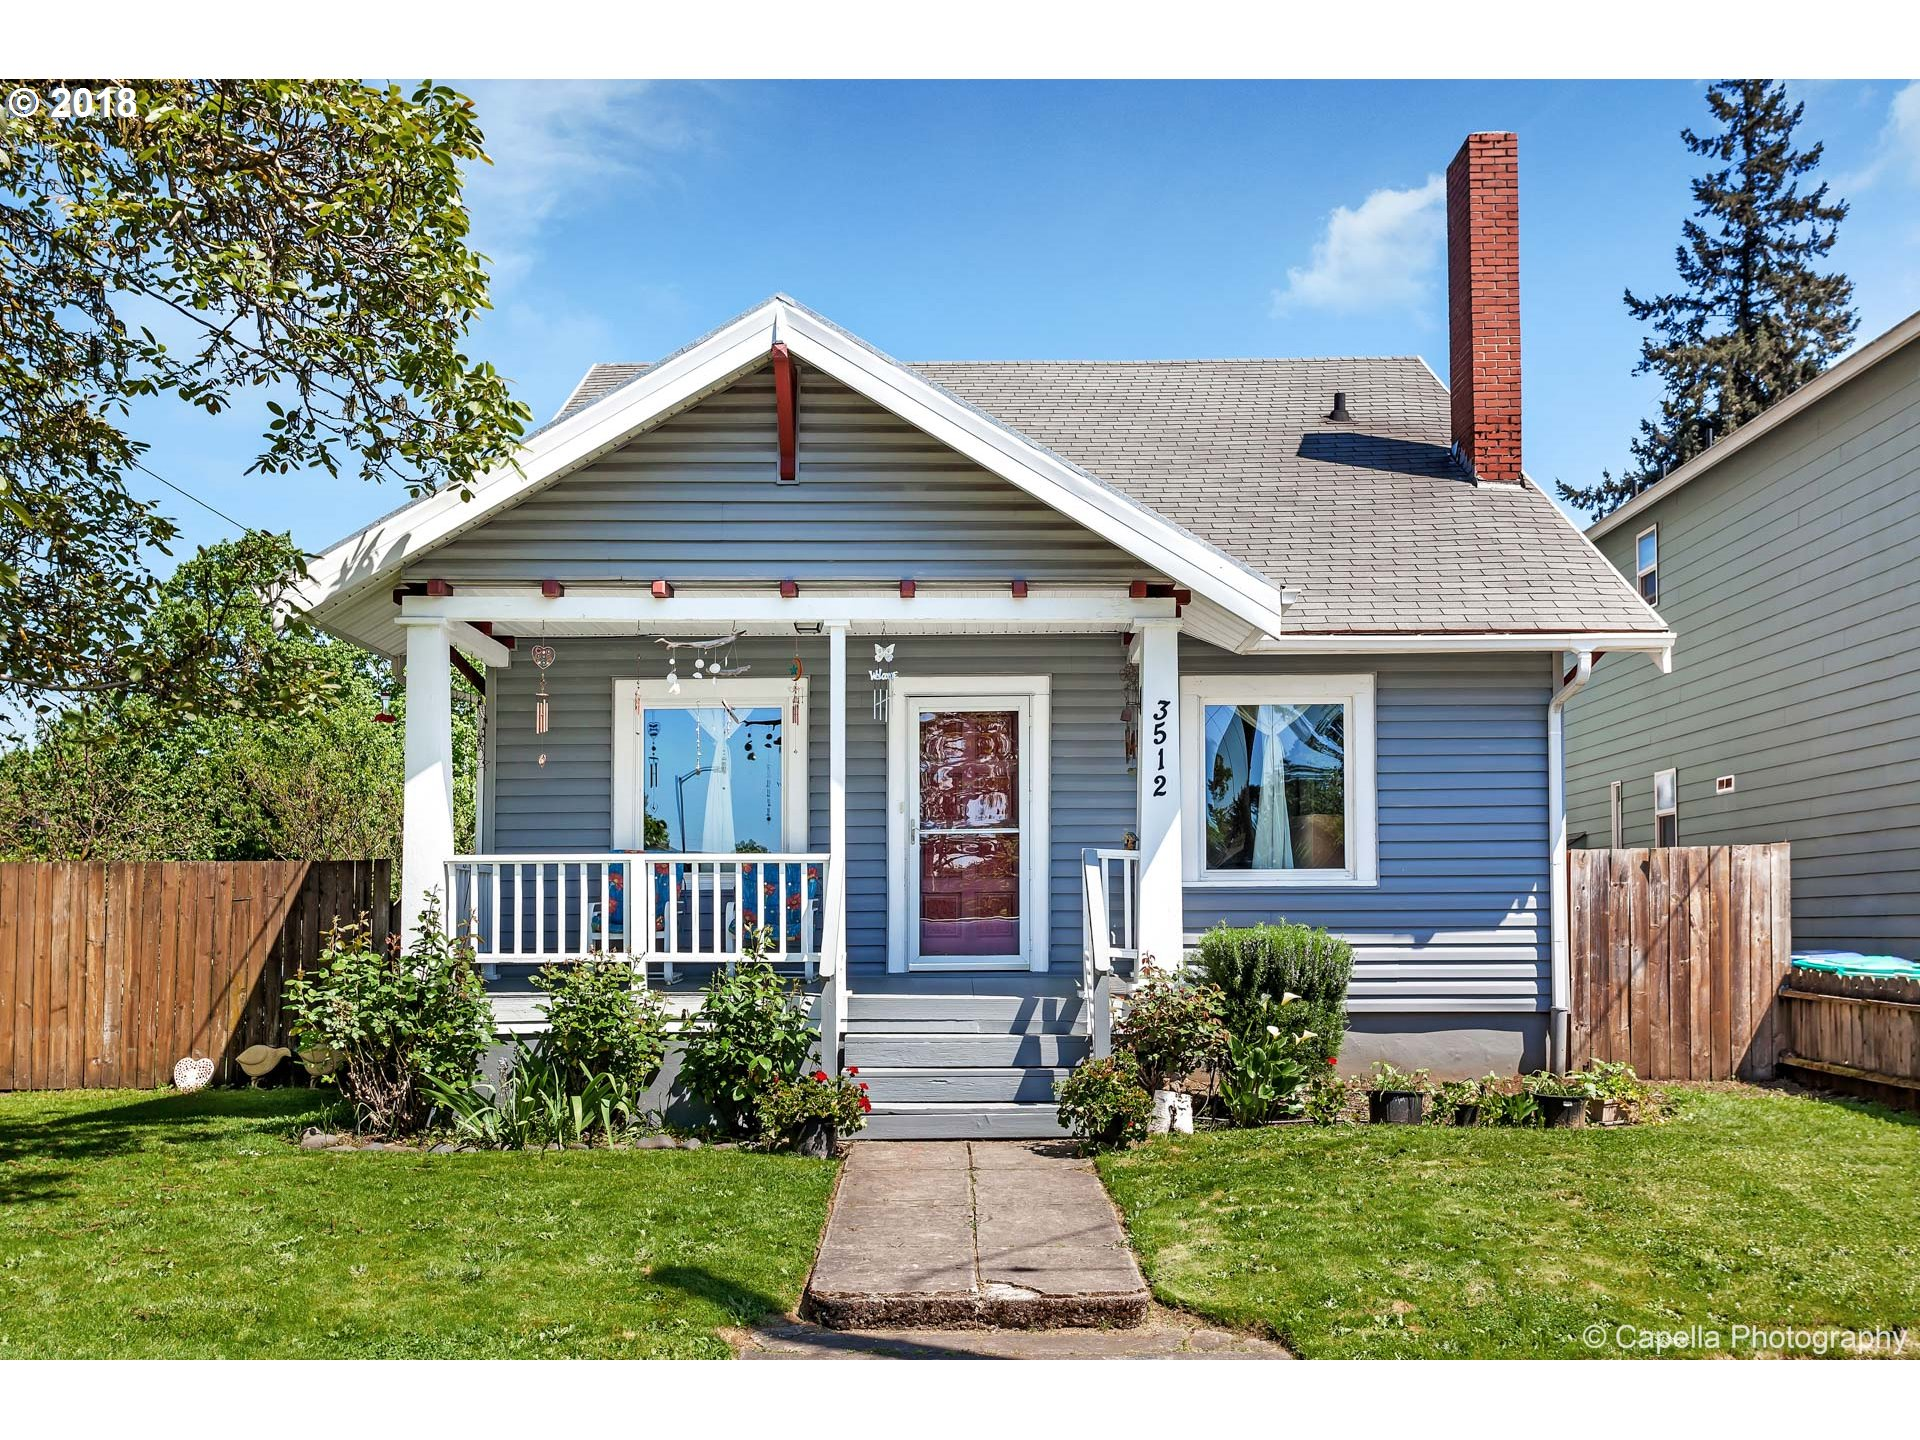 2704 sq. ft 3 bedrooms 2 bathrooms  House For Sale, Portland, OR